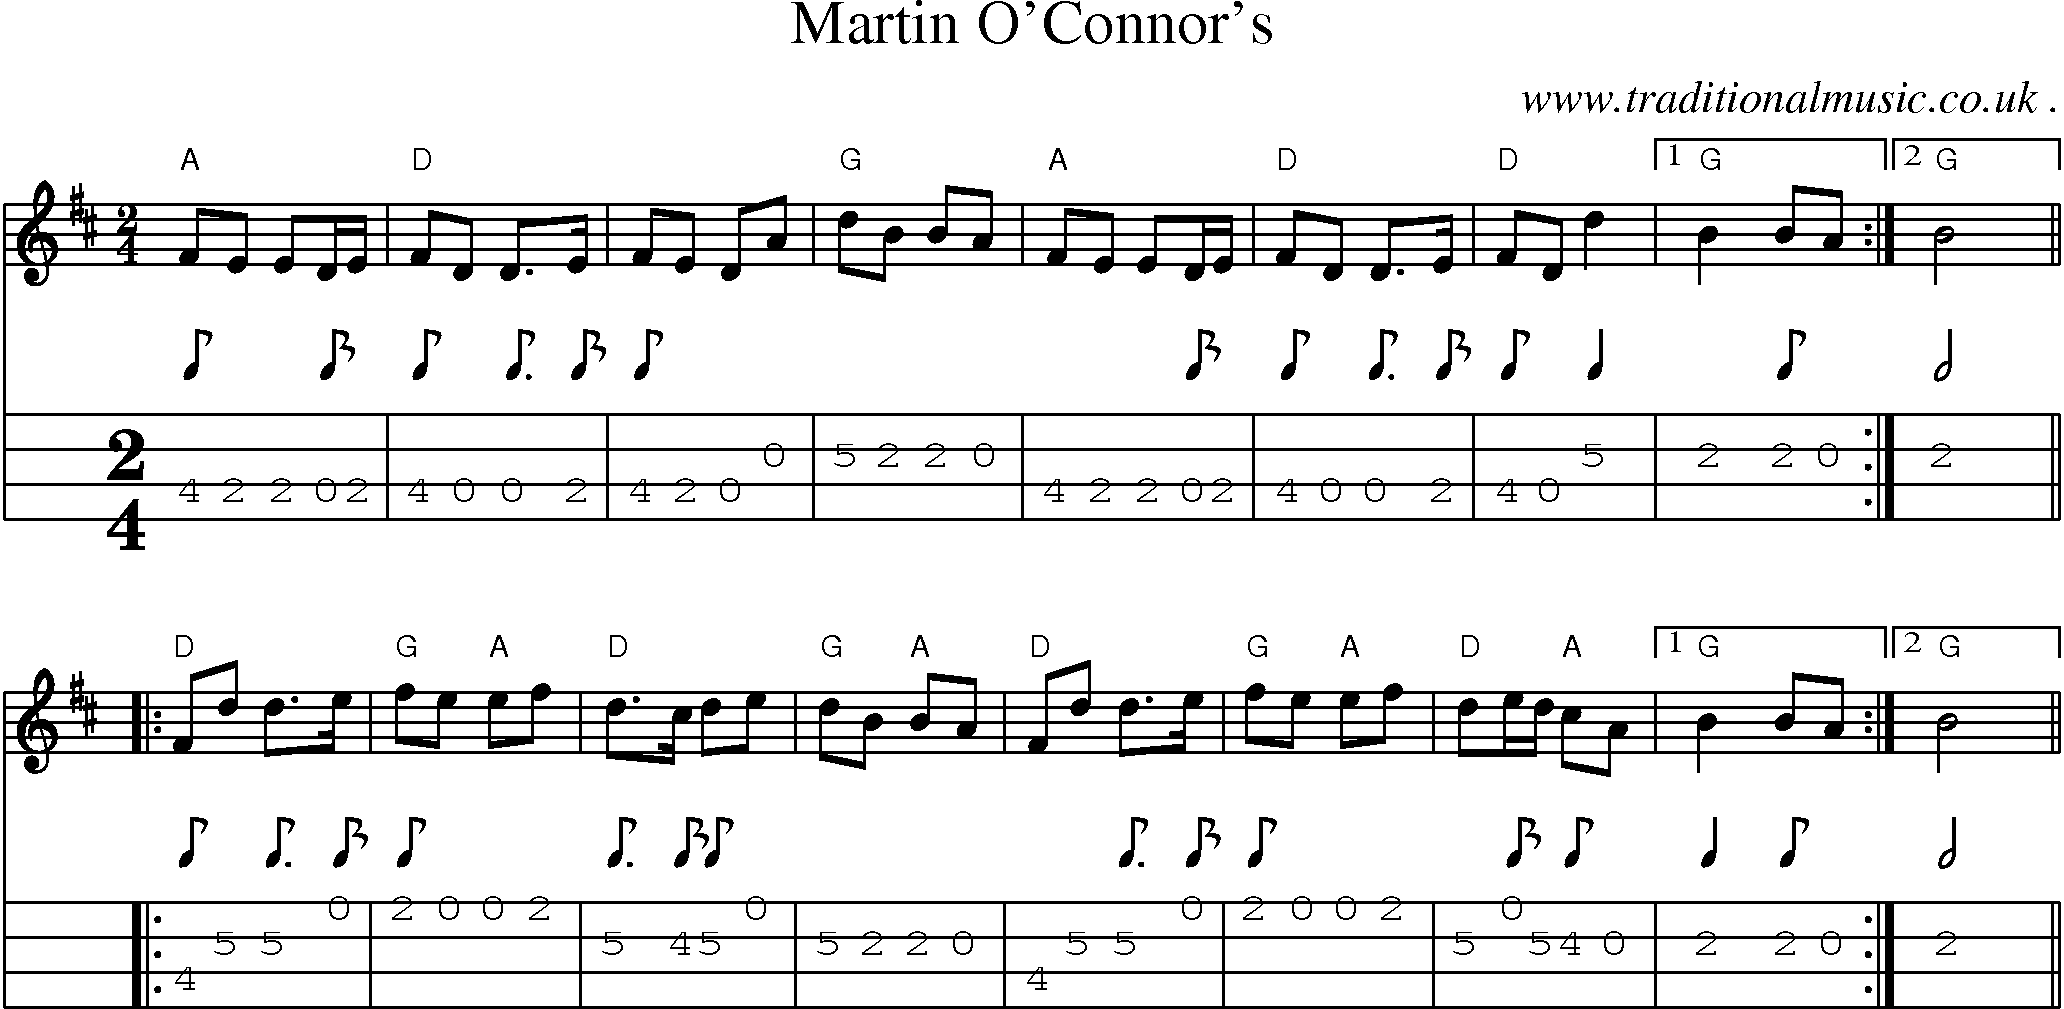 Common session tunes, Sheetmusic, Tabs for Mandolin, midi and mp3 for Martin Oconnors